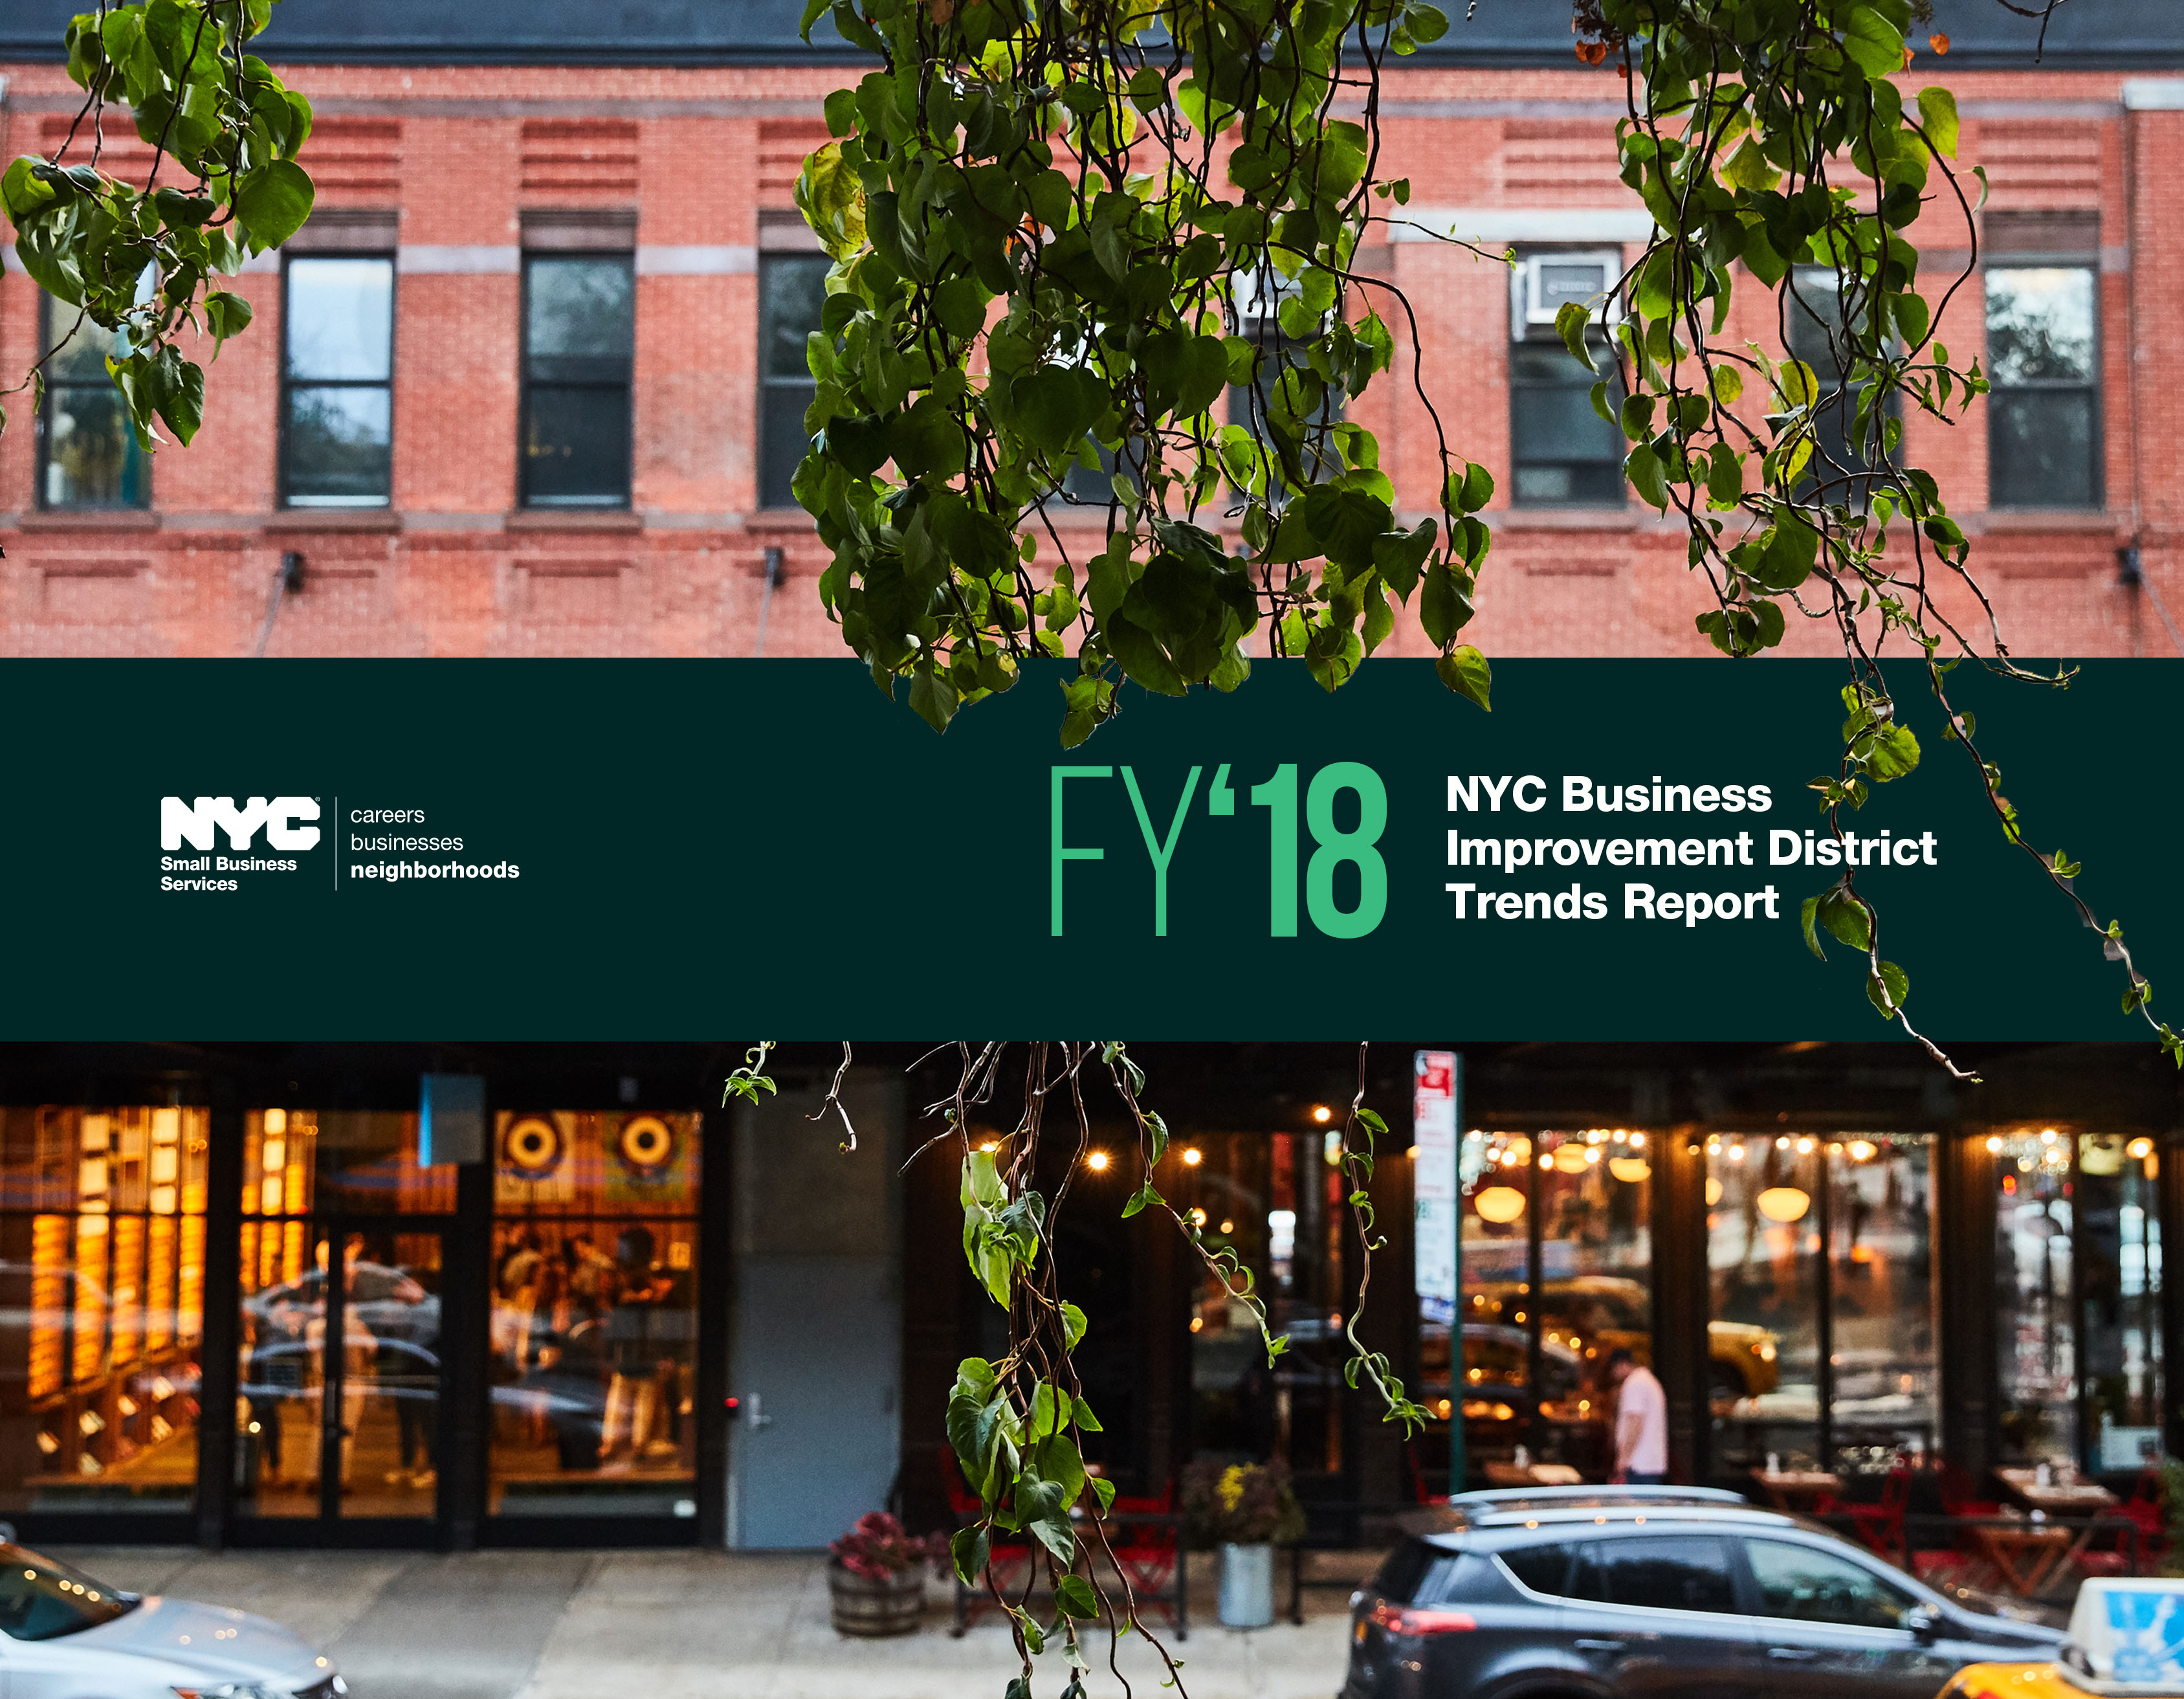 NYC Business Improvement District Trends Report: Fiscal Year 2018